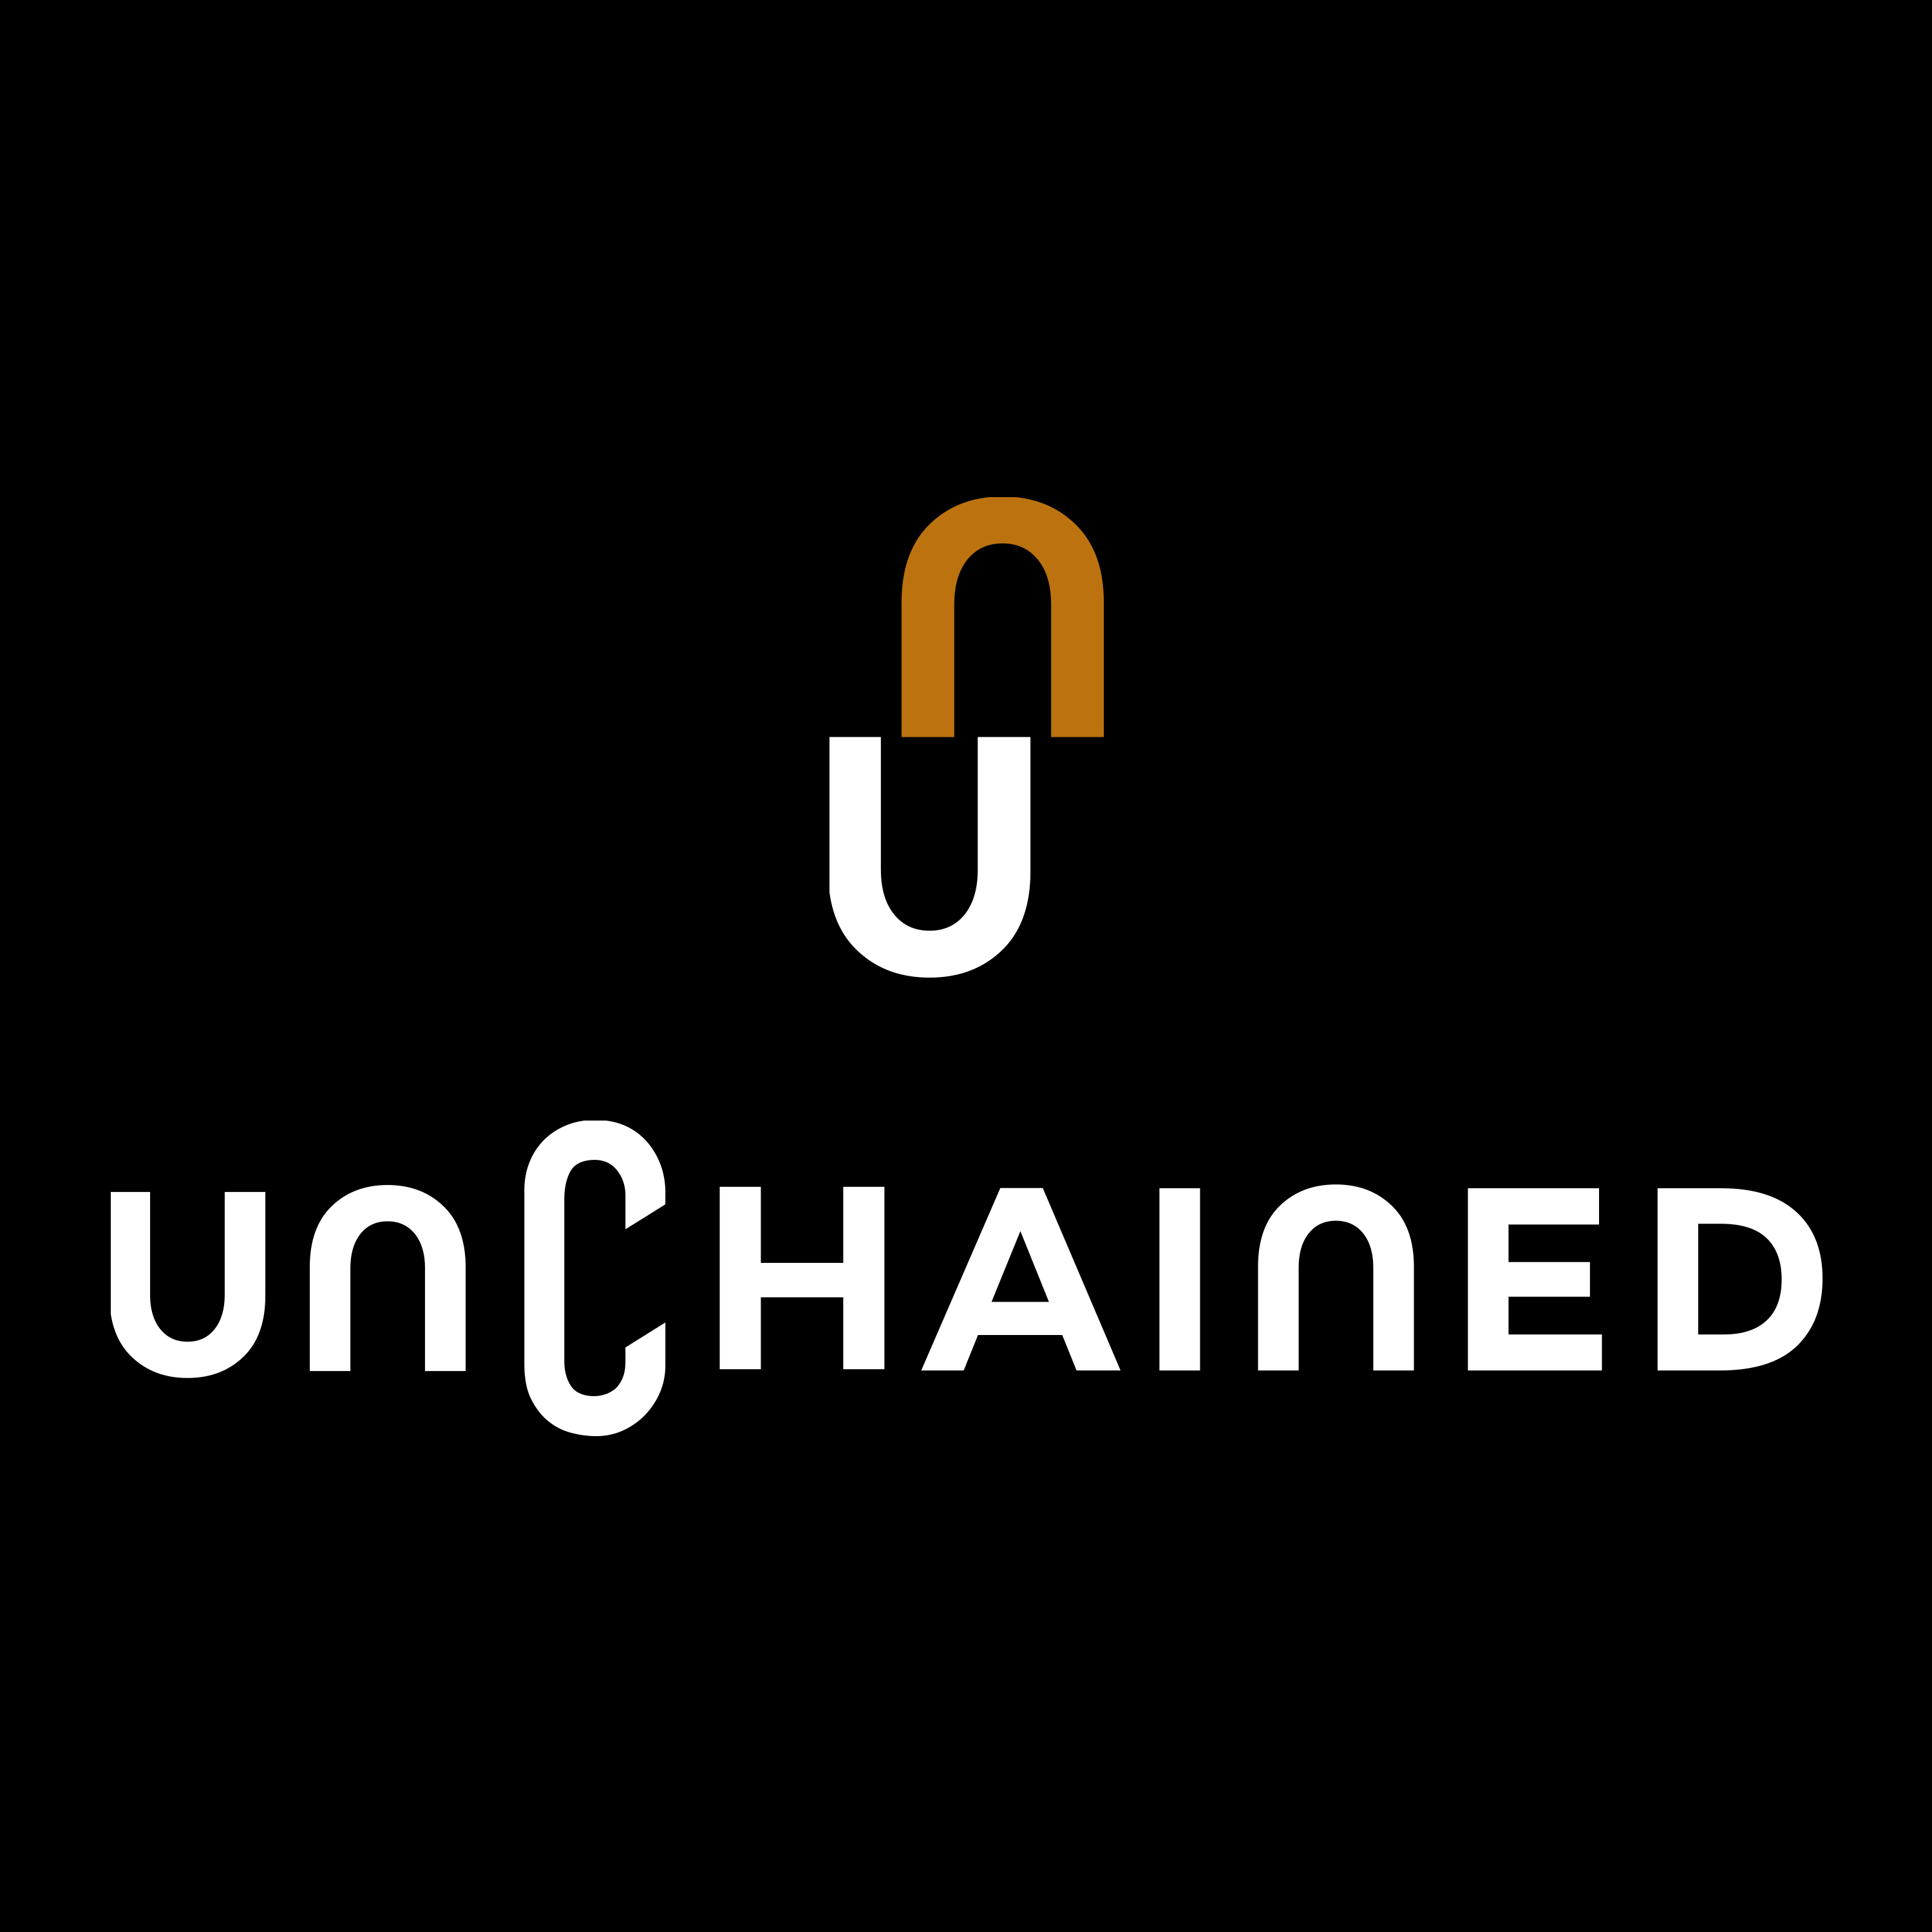 Unchained show art